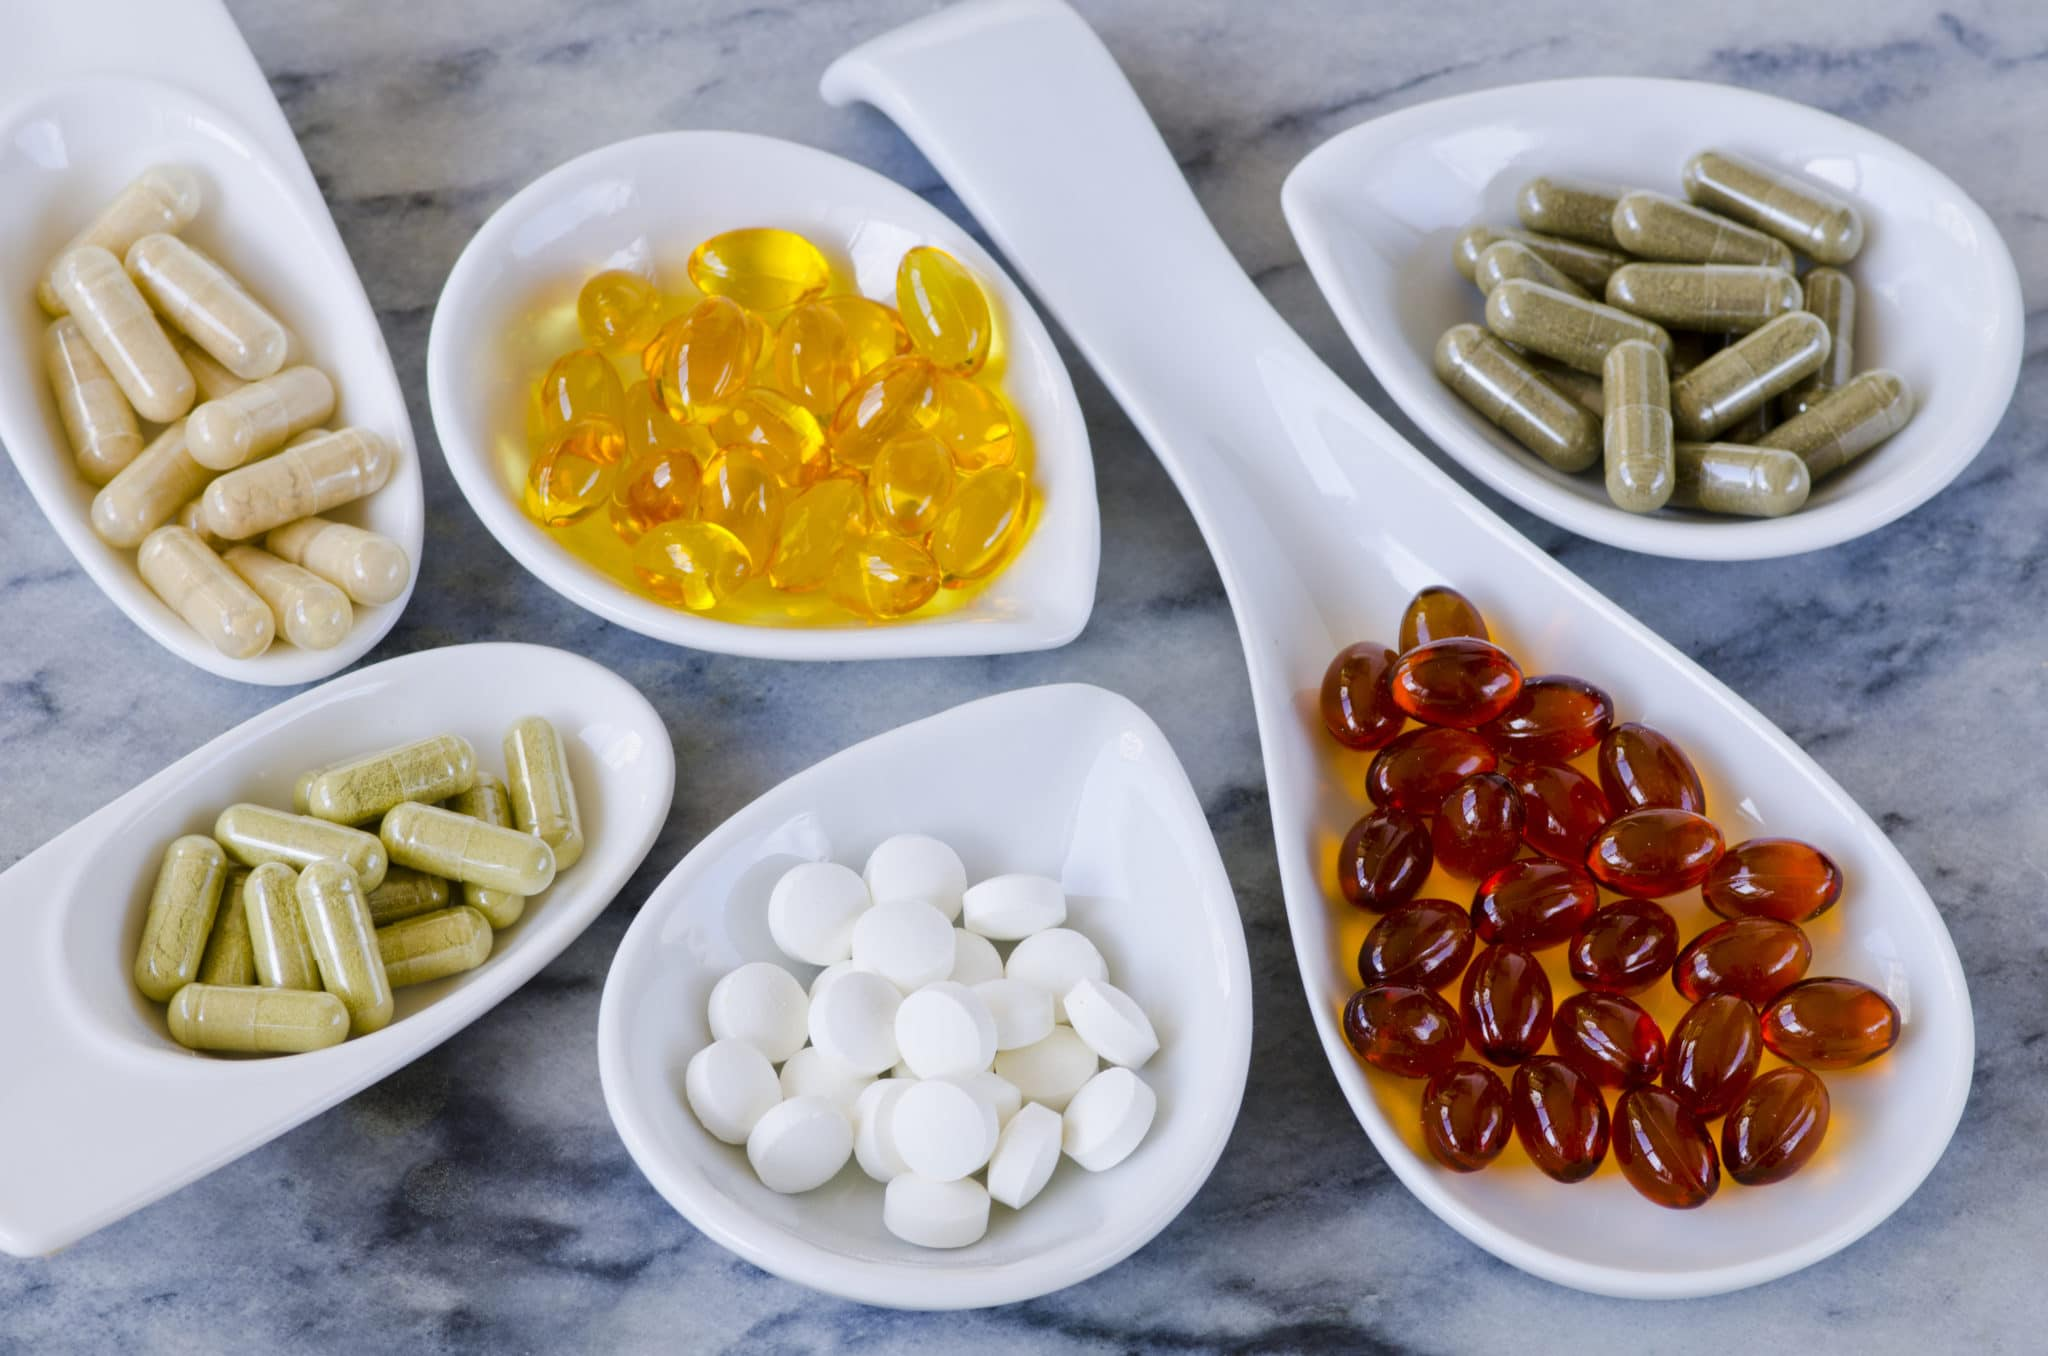 supplements for chronic pain, Do Supplements for Chronic Pain Actually Work?